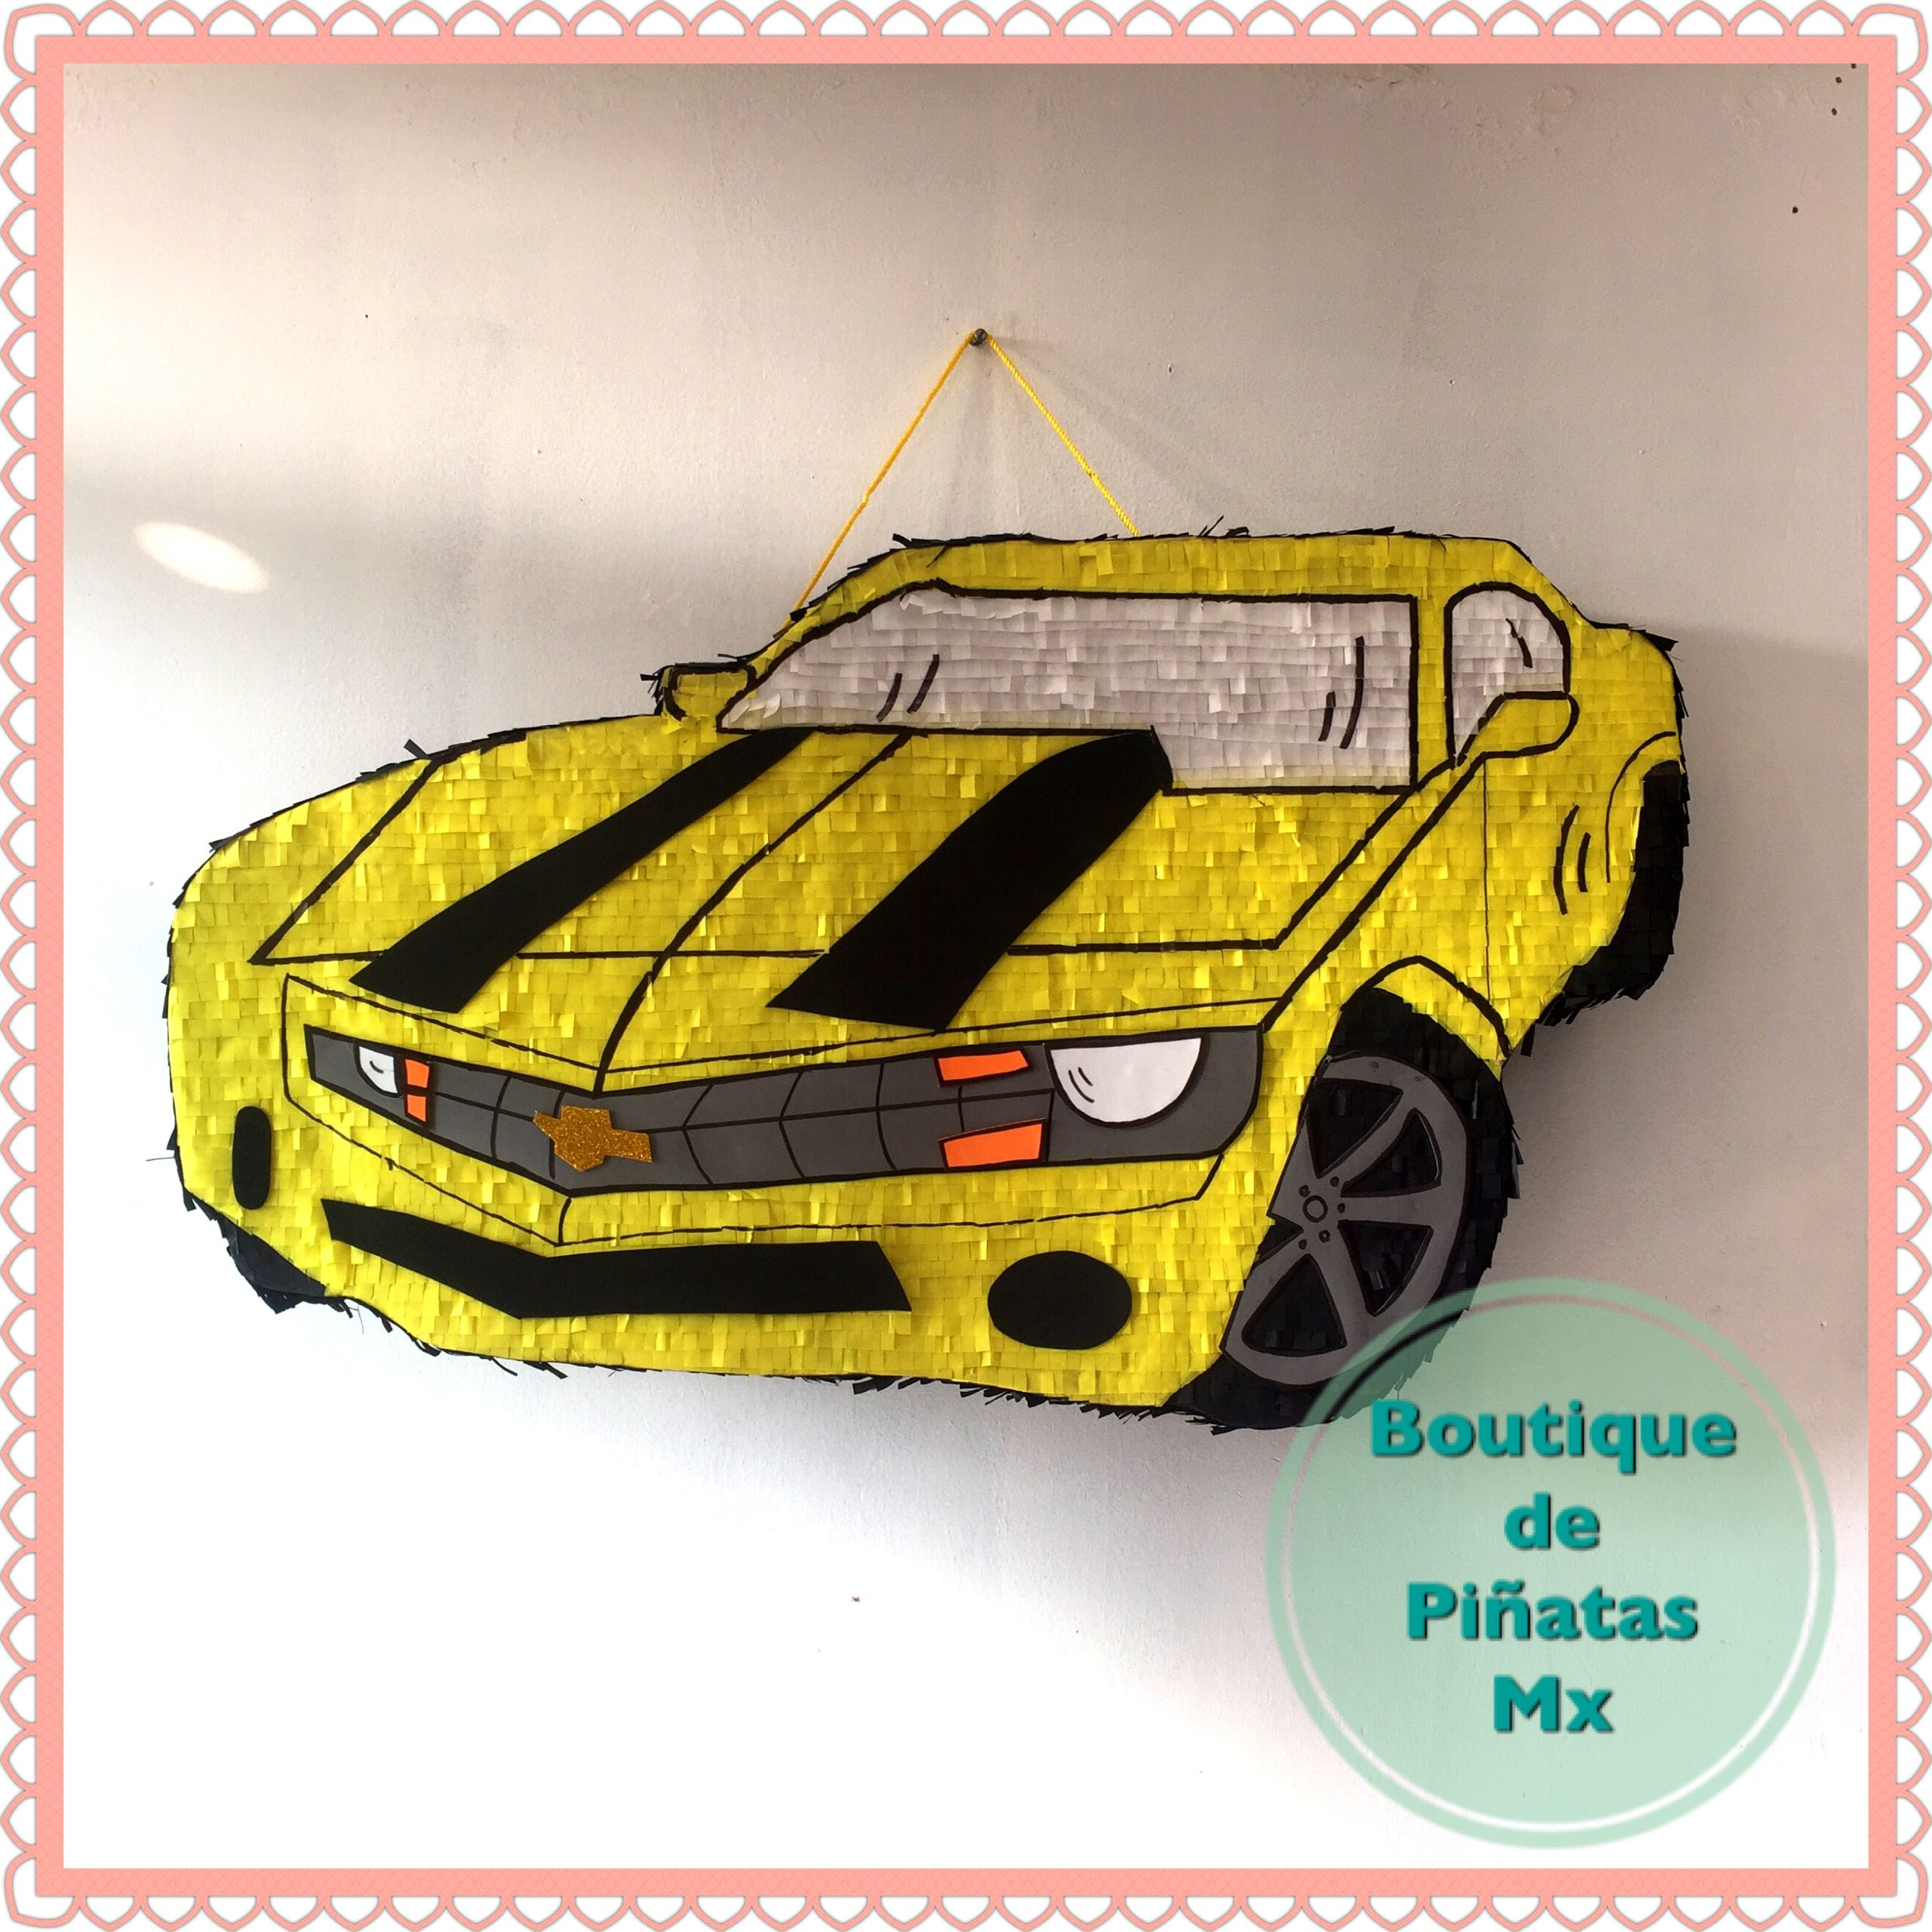 Bumble bee embroidery designs car pictures - Transformers Bumblebee Bumblebee Car Camaro Pi Ata Infantil Env Os A